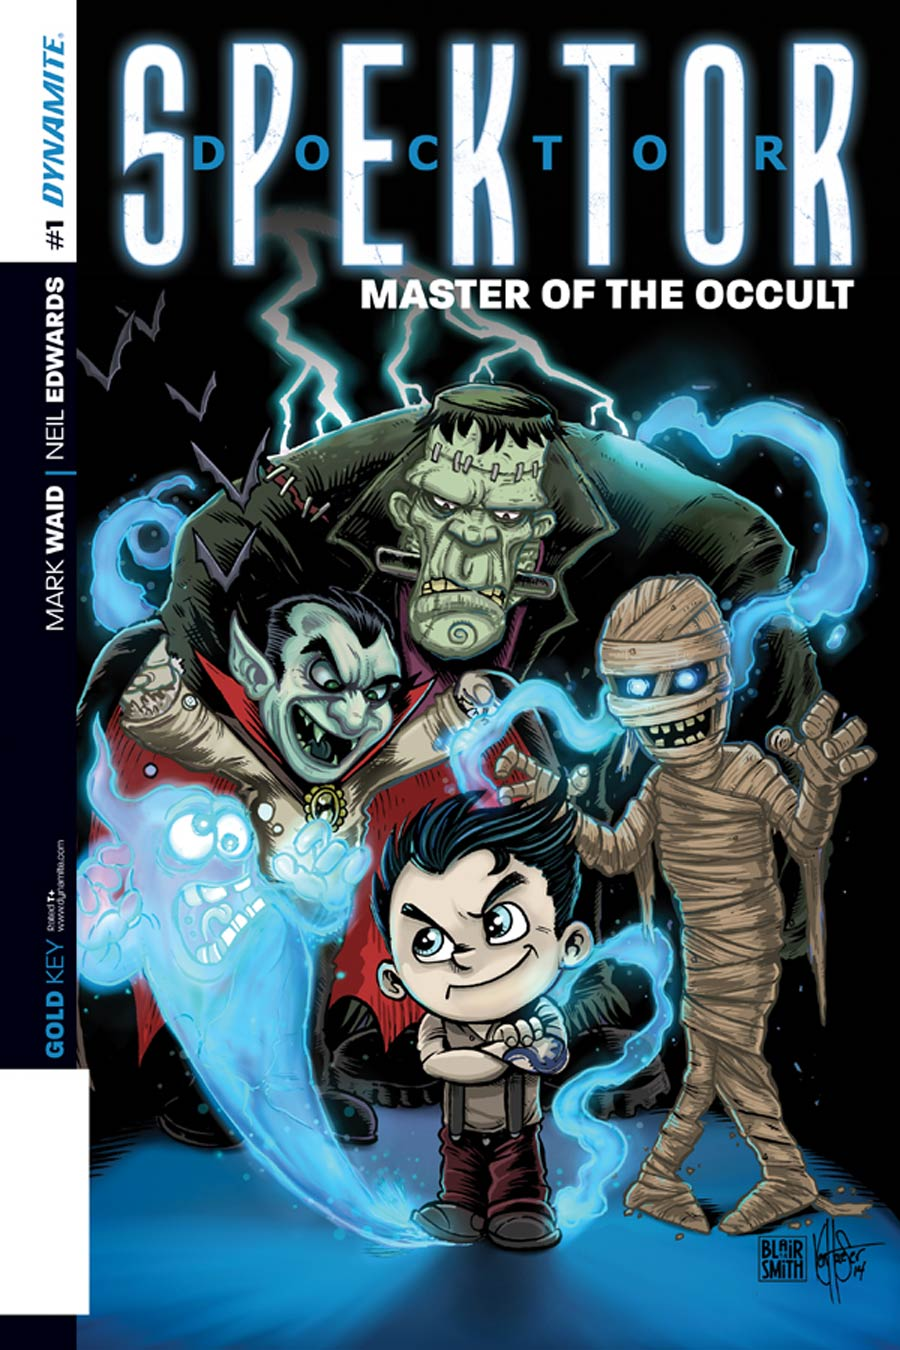 Doctor Spektor Master Of The Occult #1 Cover K Incentive Ken Haeser Lil Spektor Master Of The Occult Variant Cover